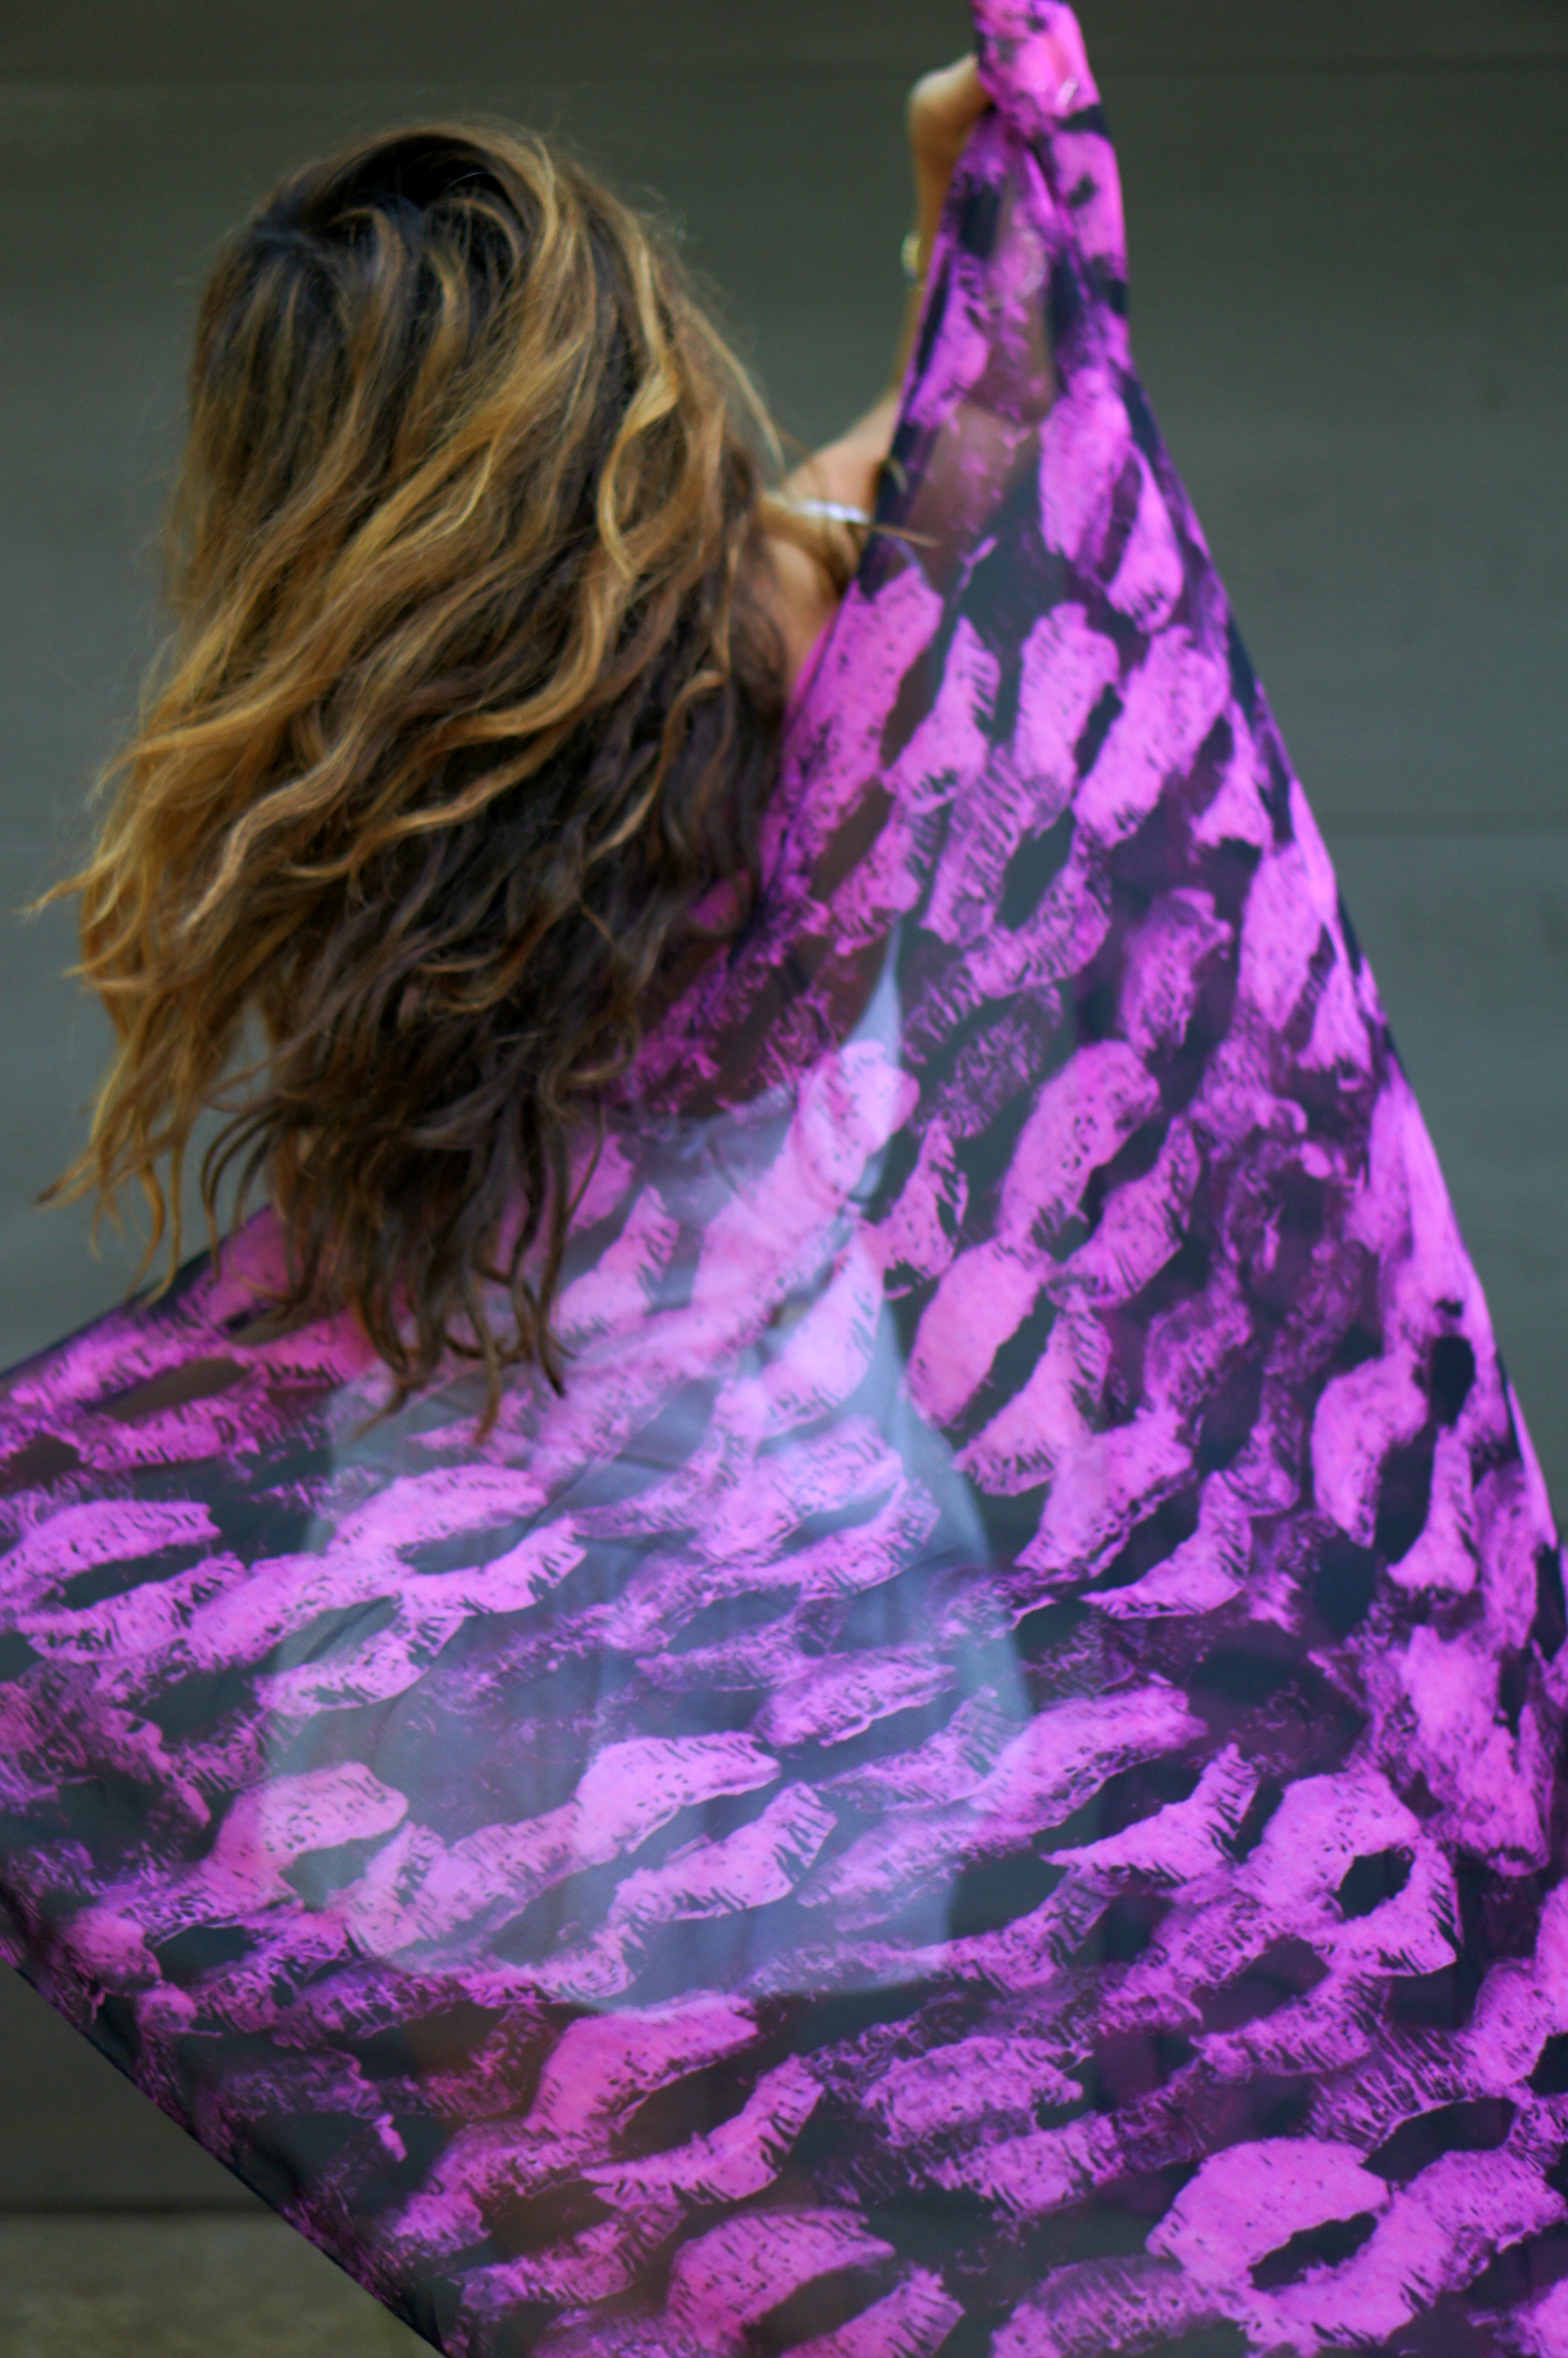 scarf, besos, kisses, accessories, anna coroneo, bloomingdales, scarves, style, fall style